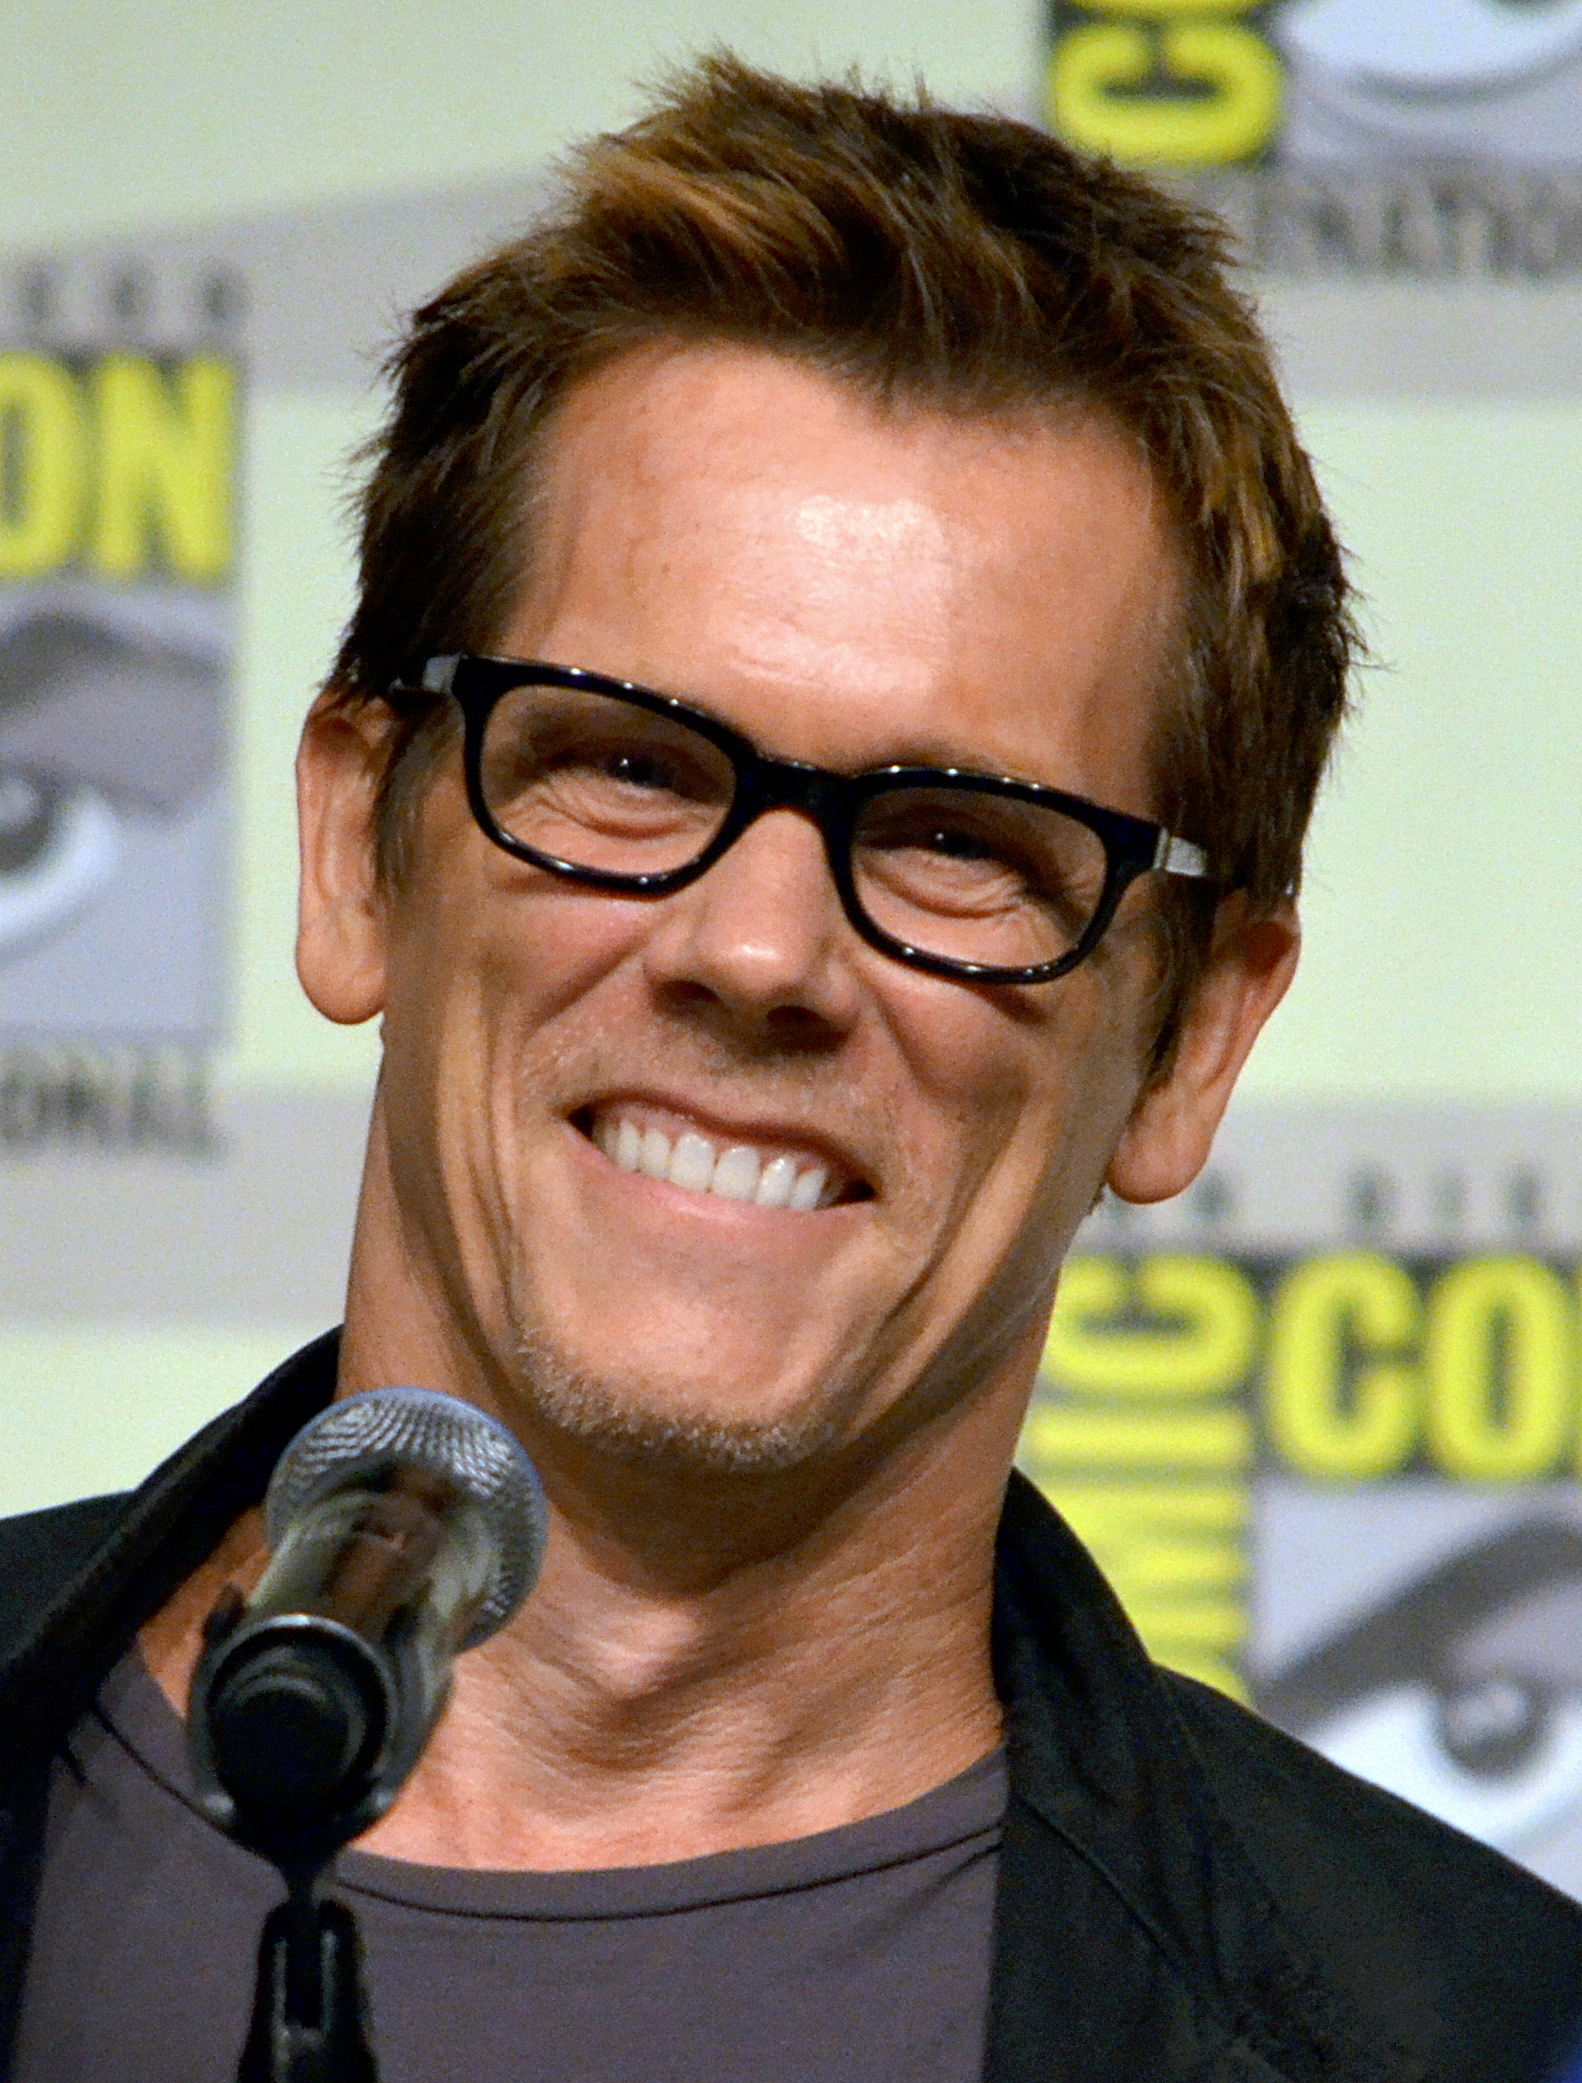 Pictures of Kevin Bacon   Pictures Of Celebrities 1582x2083